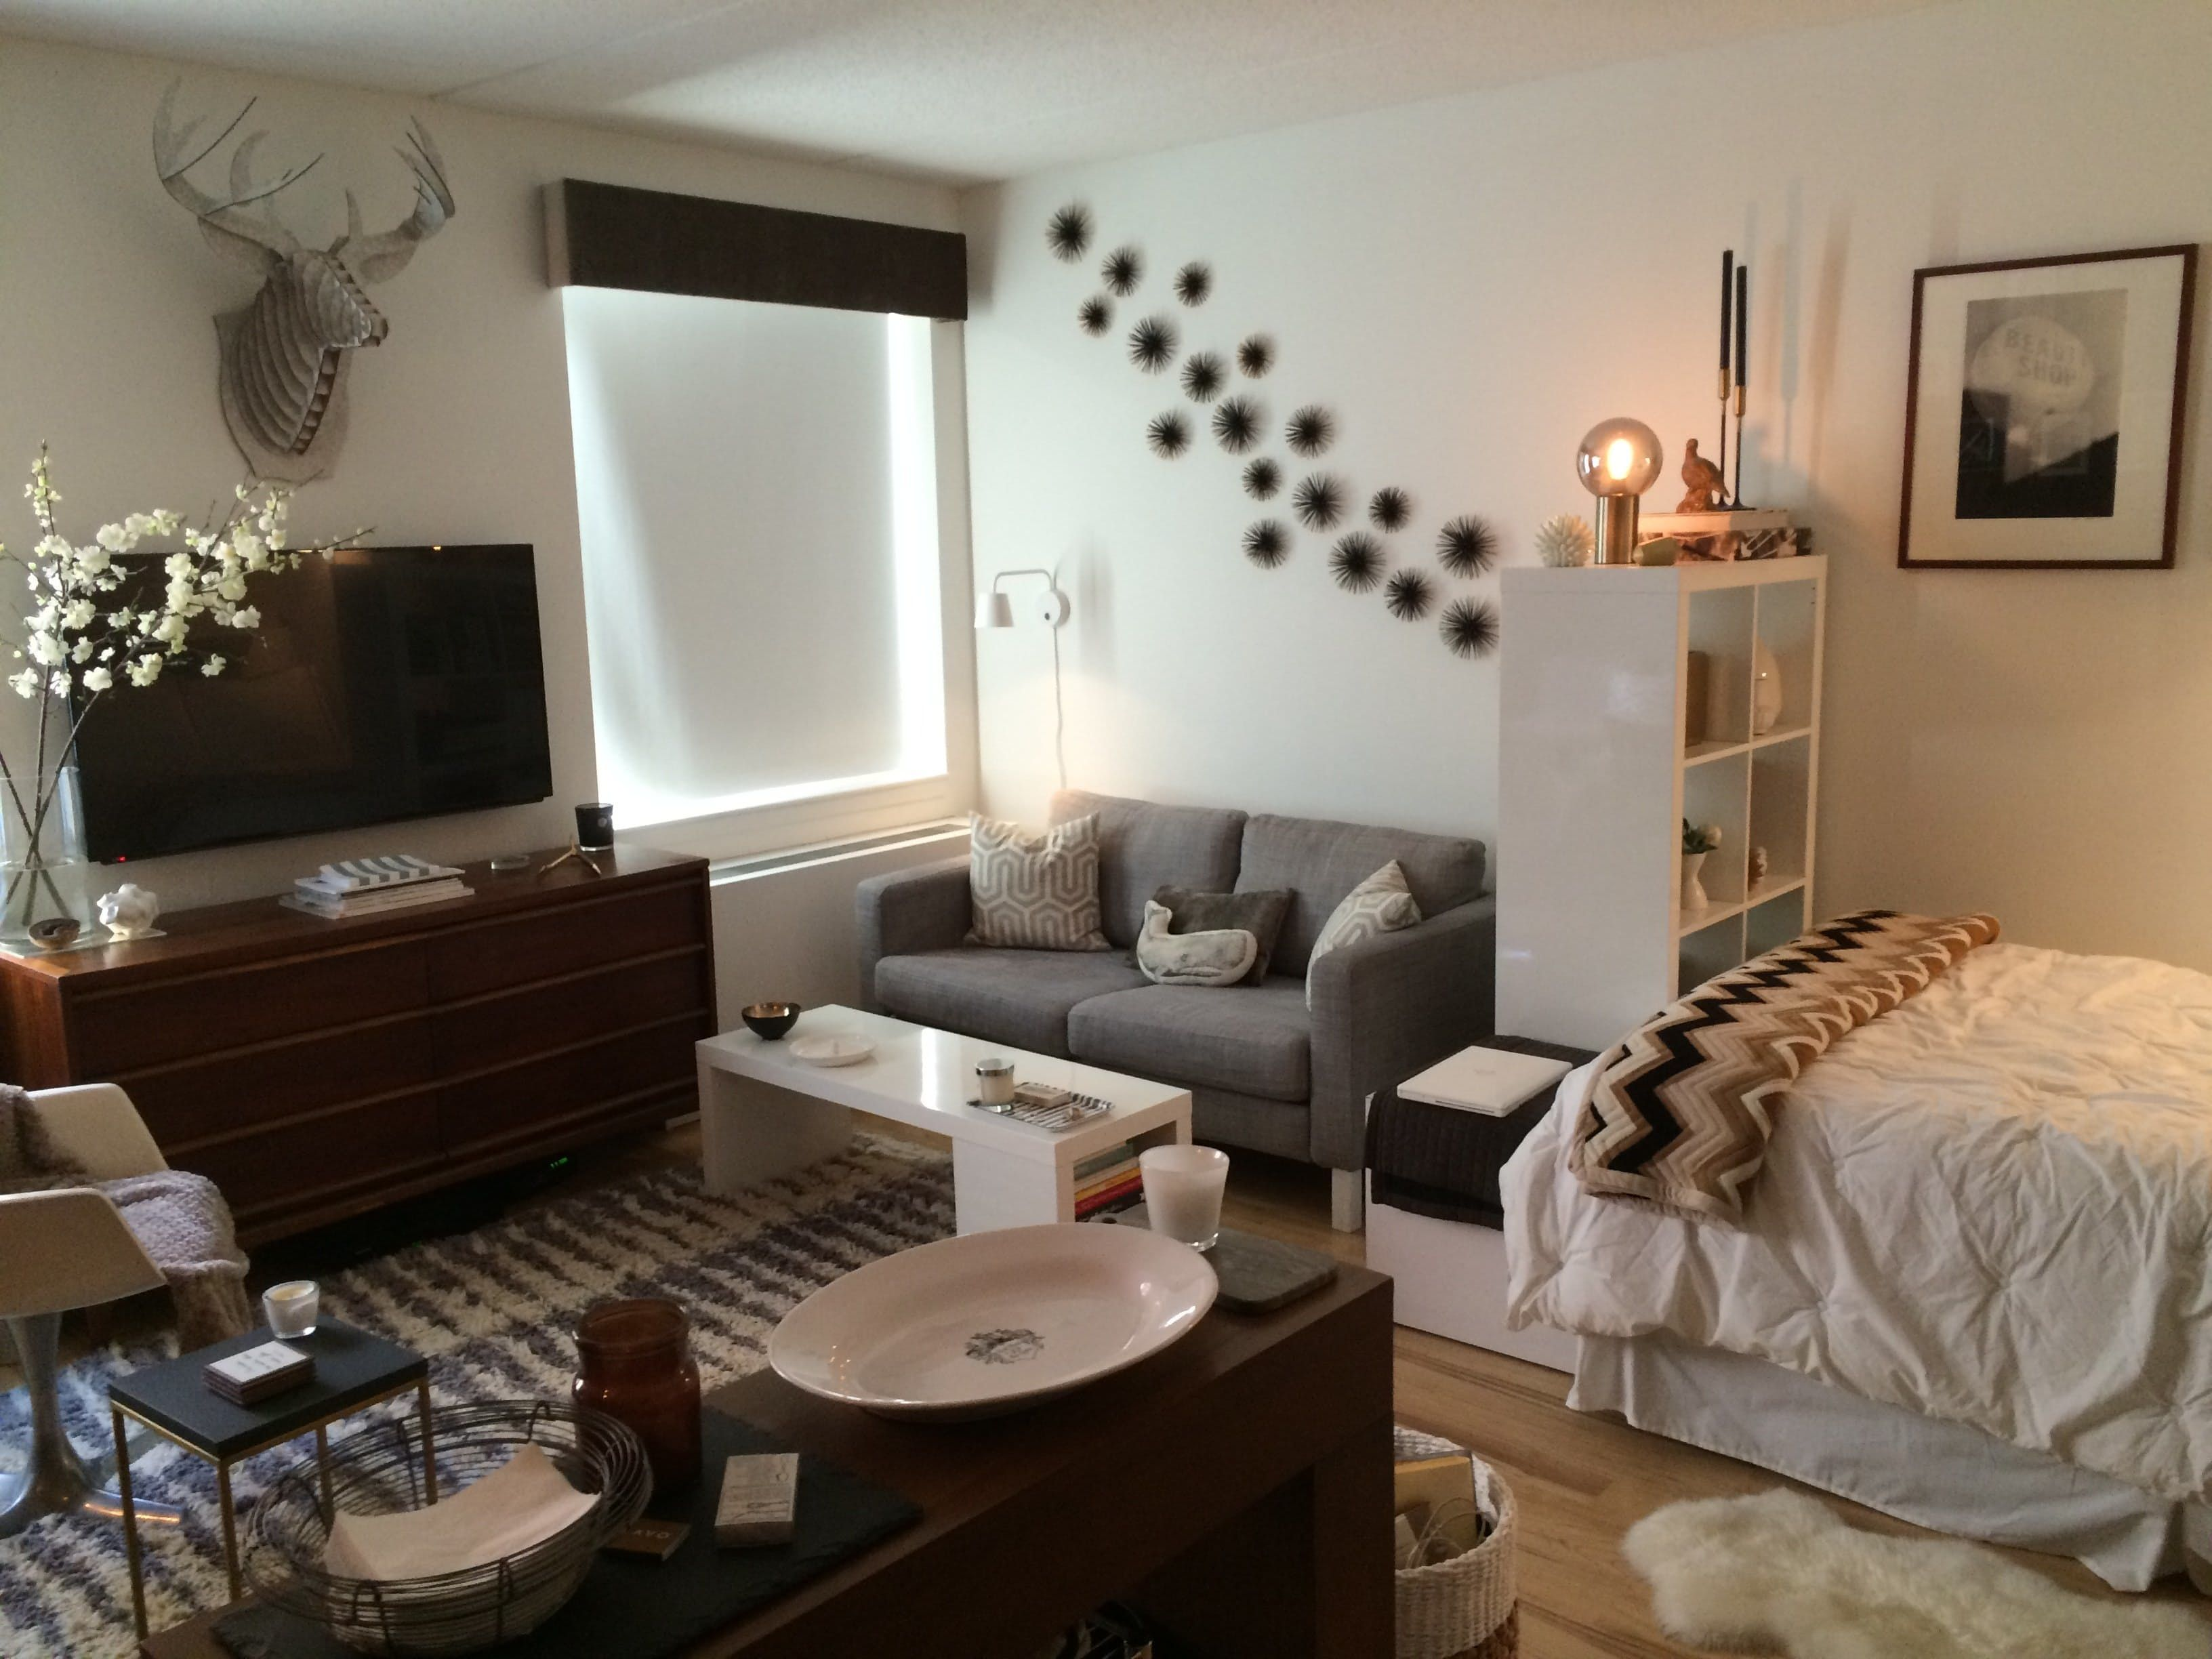 5 studio apartment layouts that work studio apartment for One room studio apartment